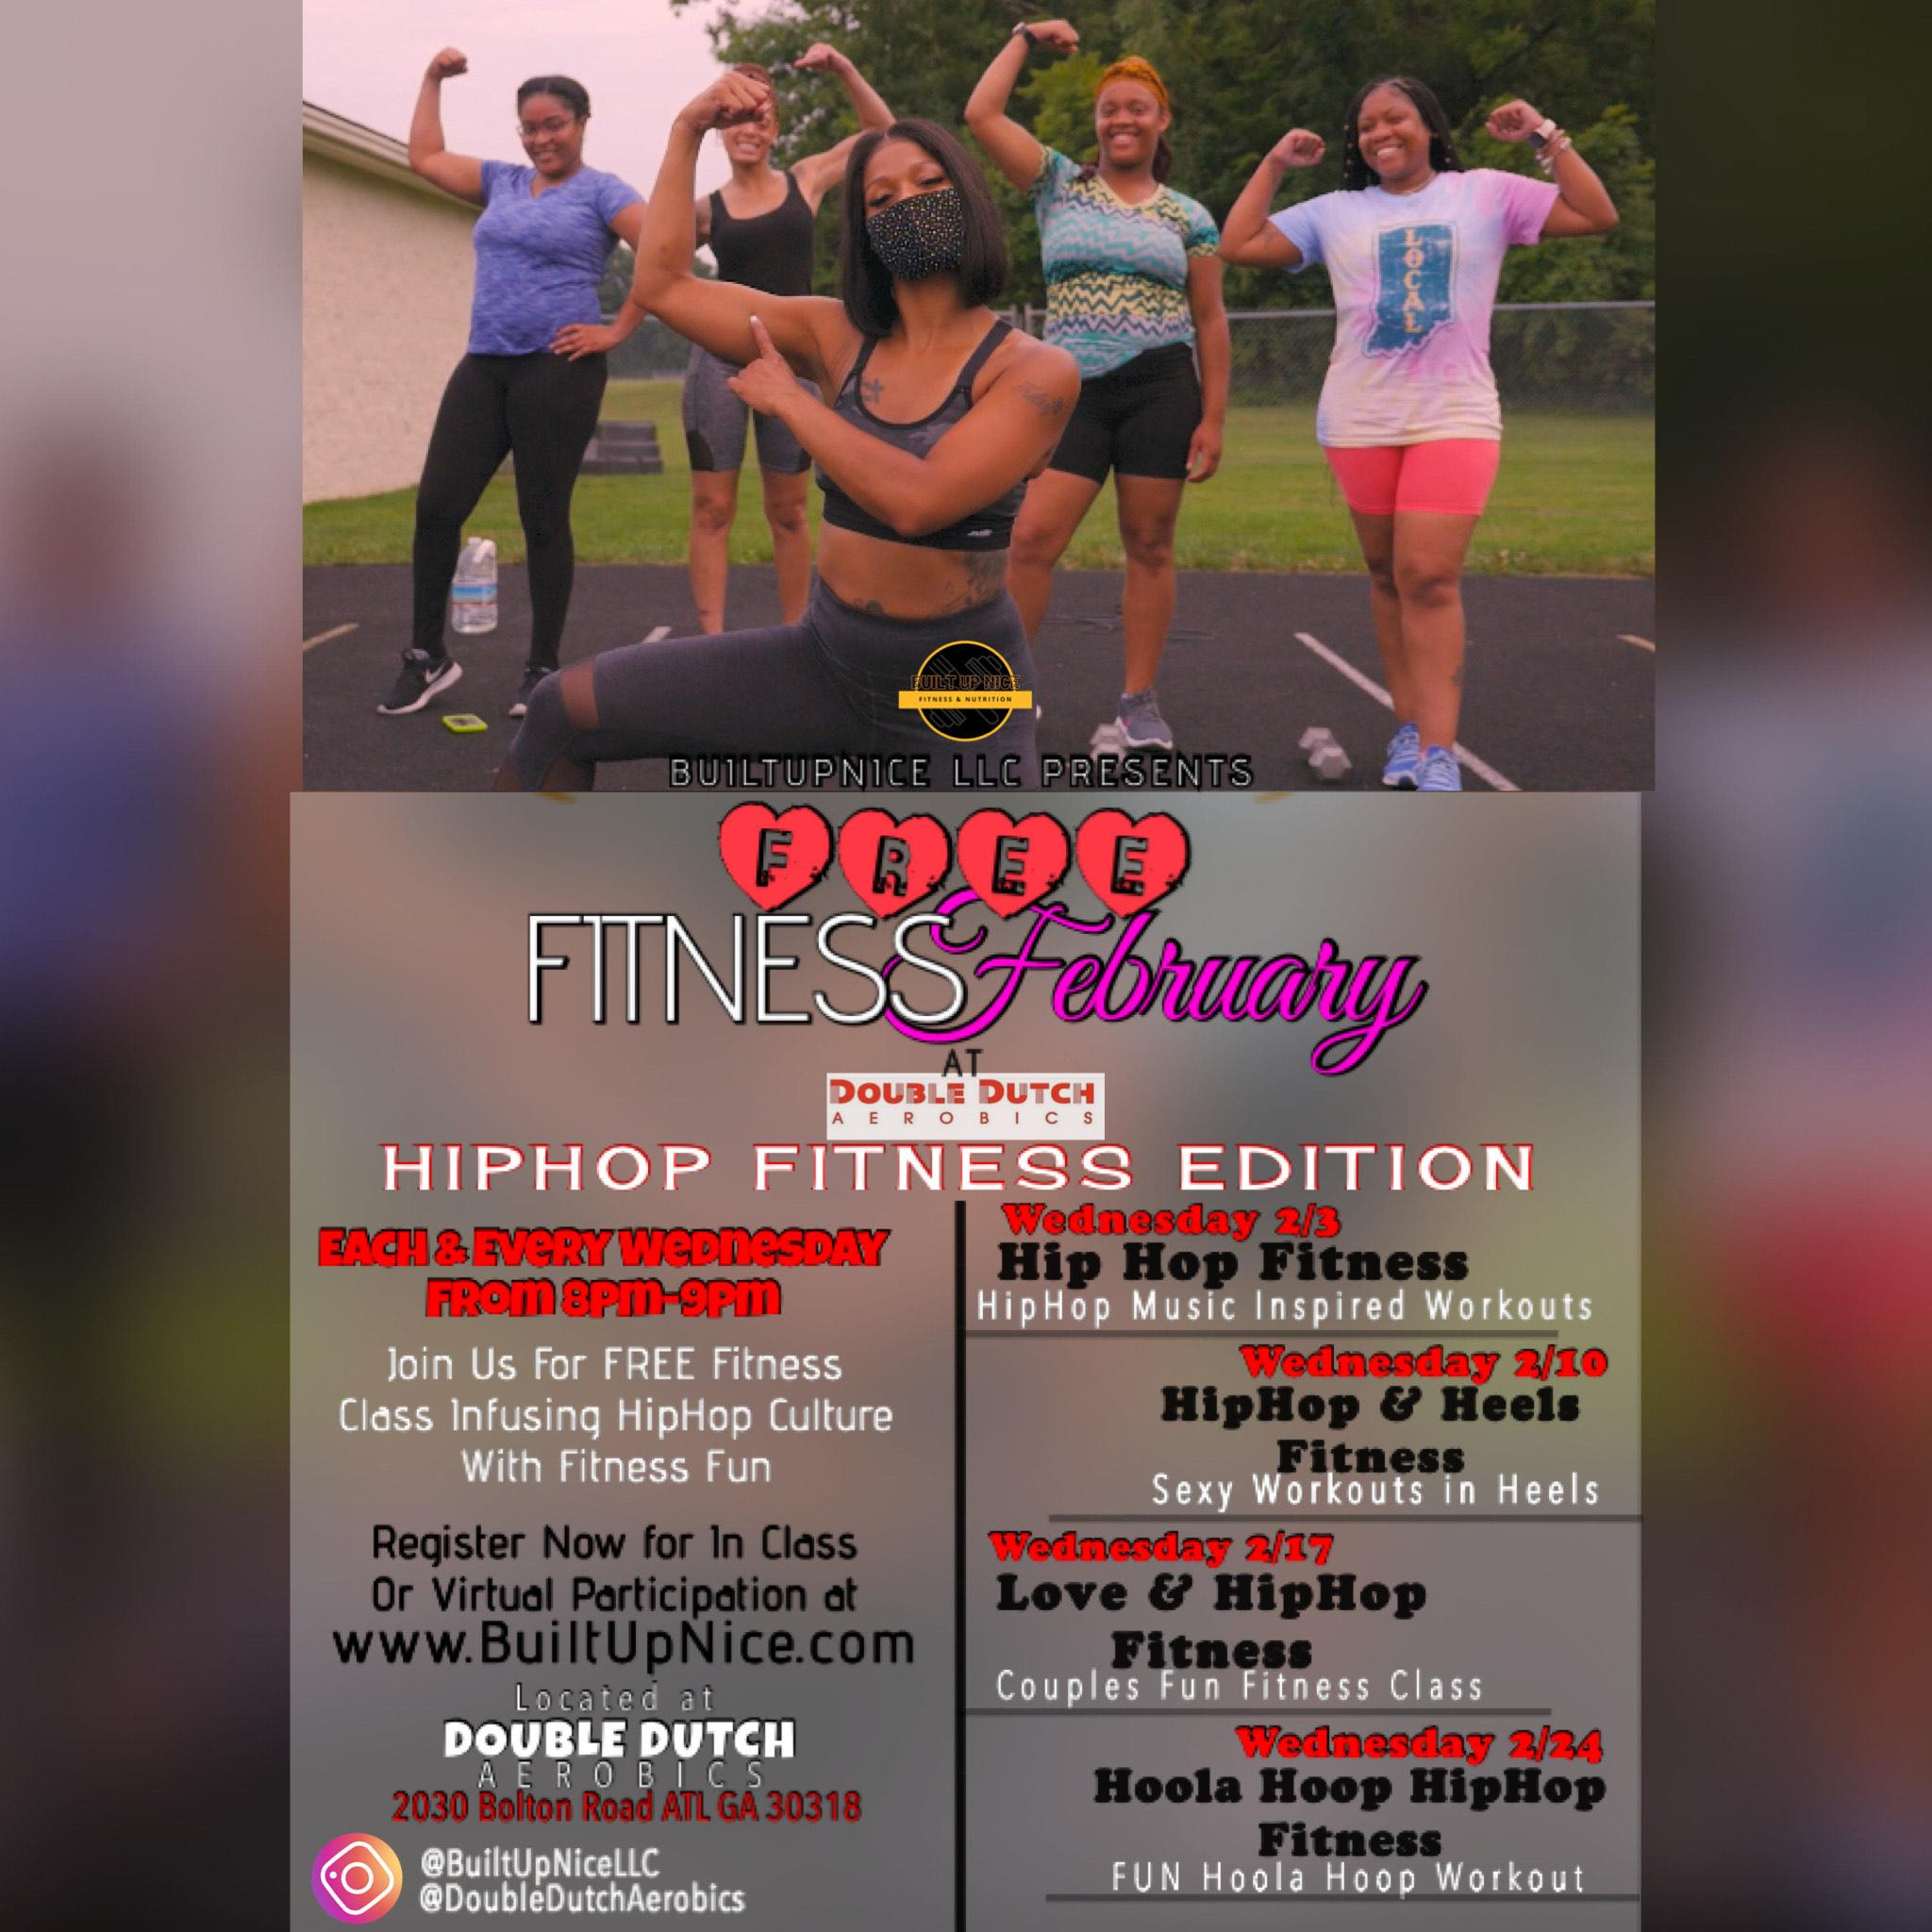 Built Up Nice: FREE Fitness February: HipHop Fitness Edition